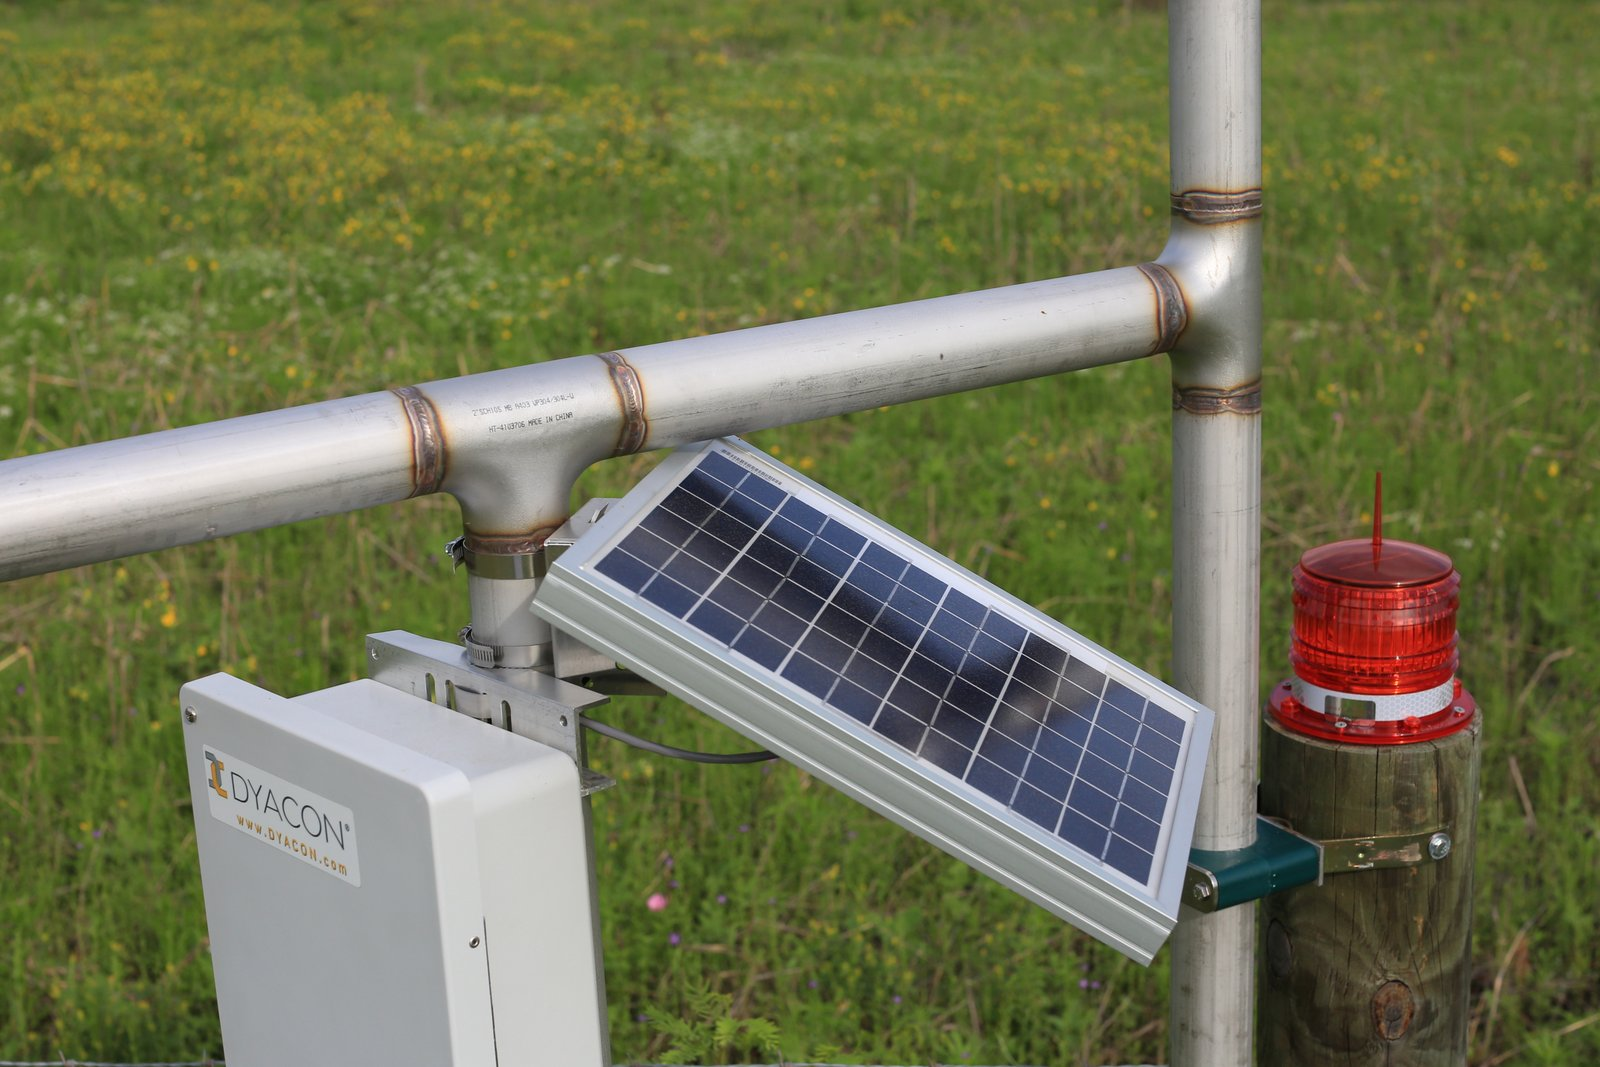 Dyacon Automated Cell Phone Weather Station